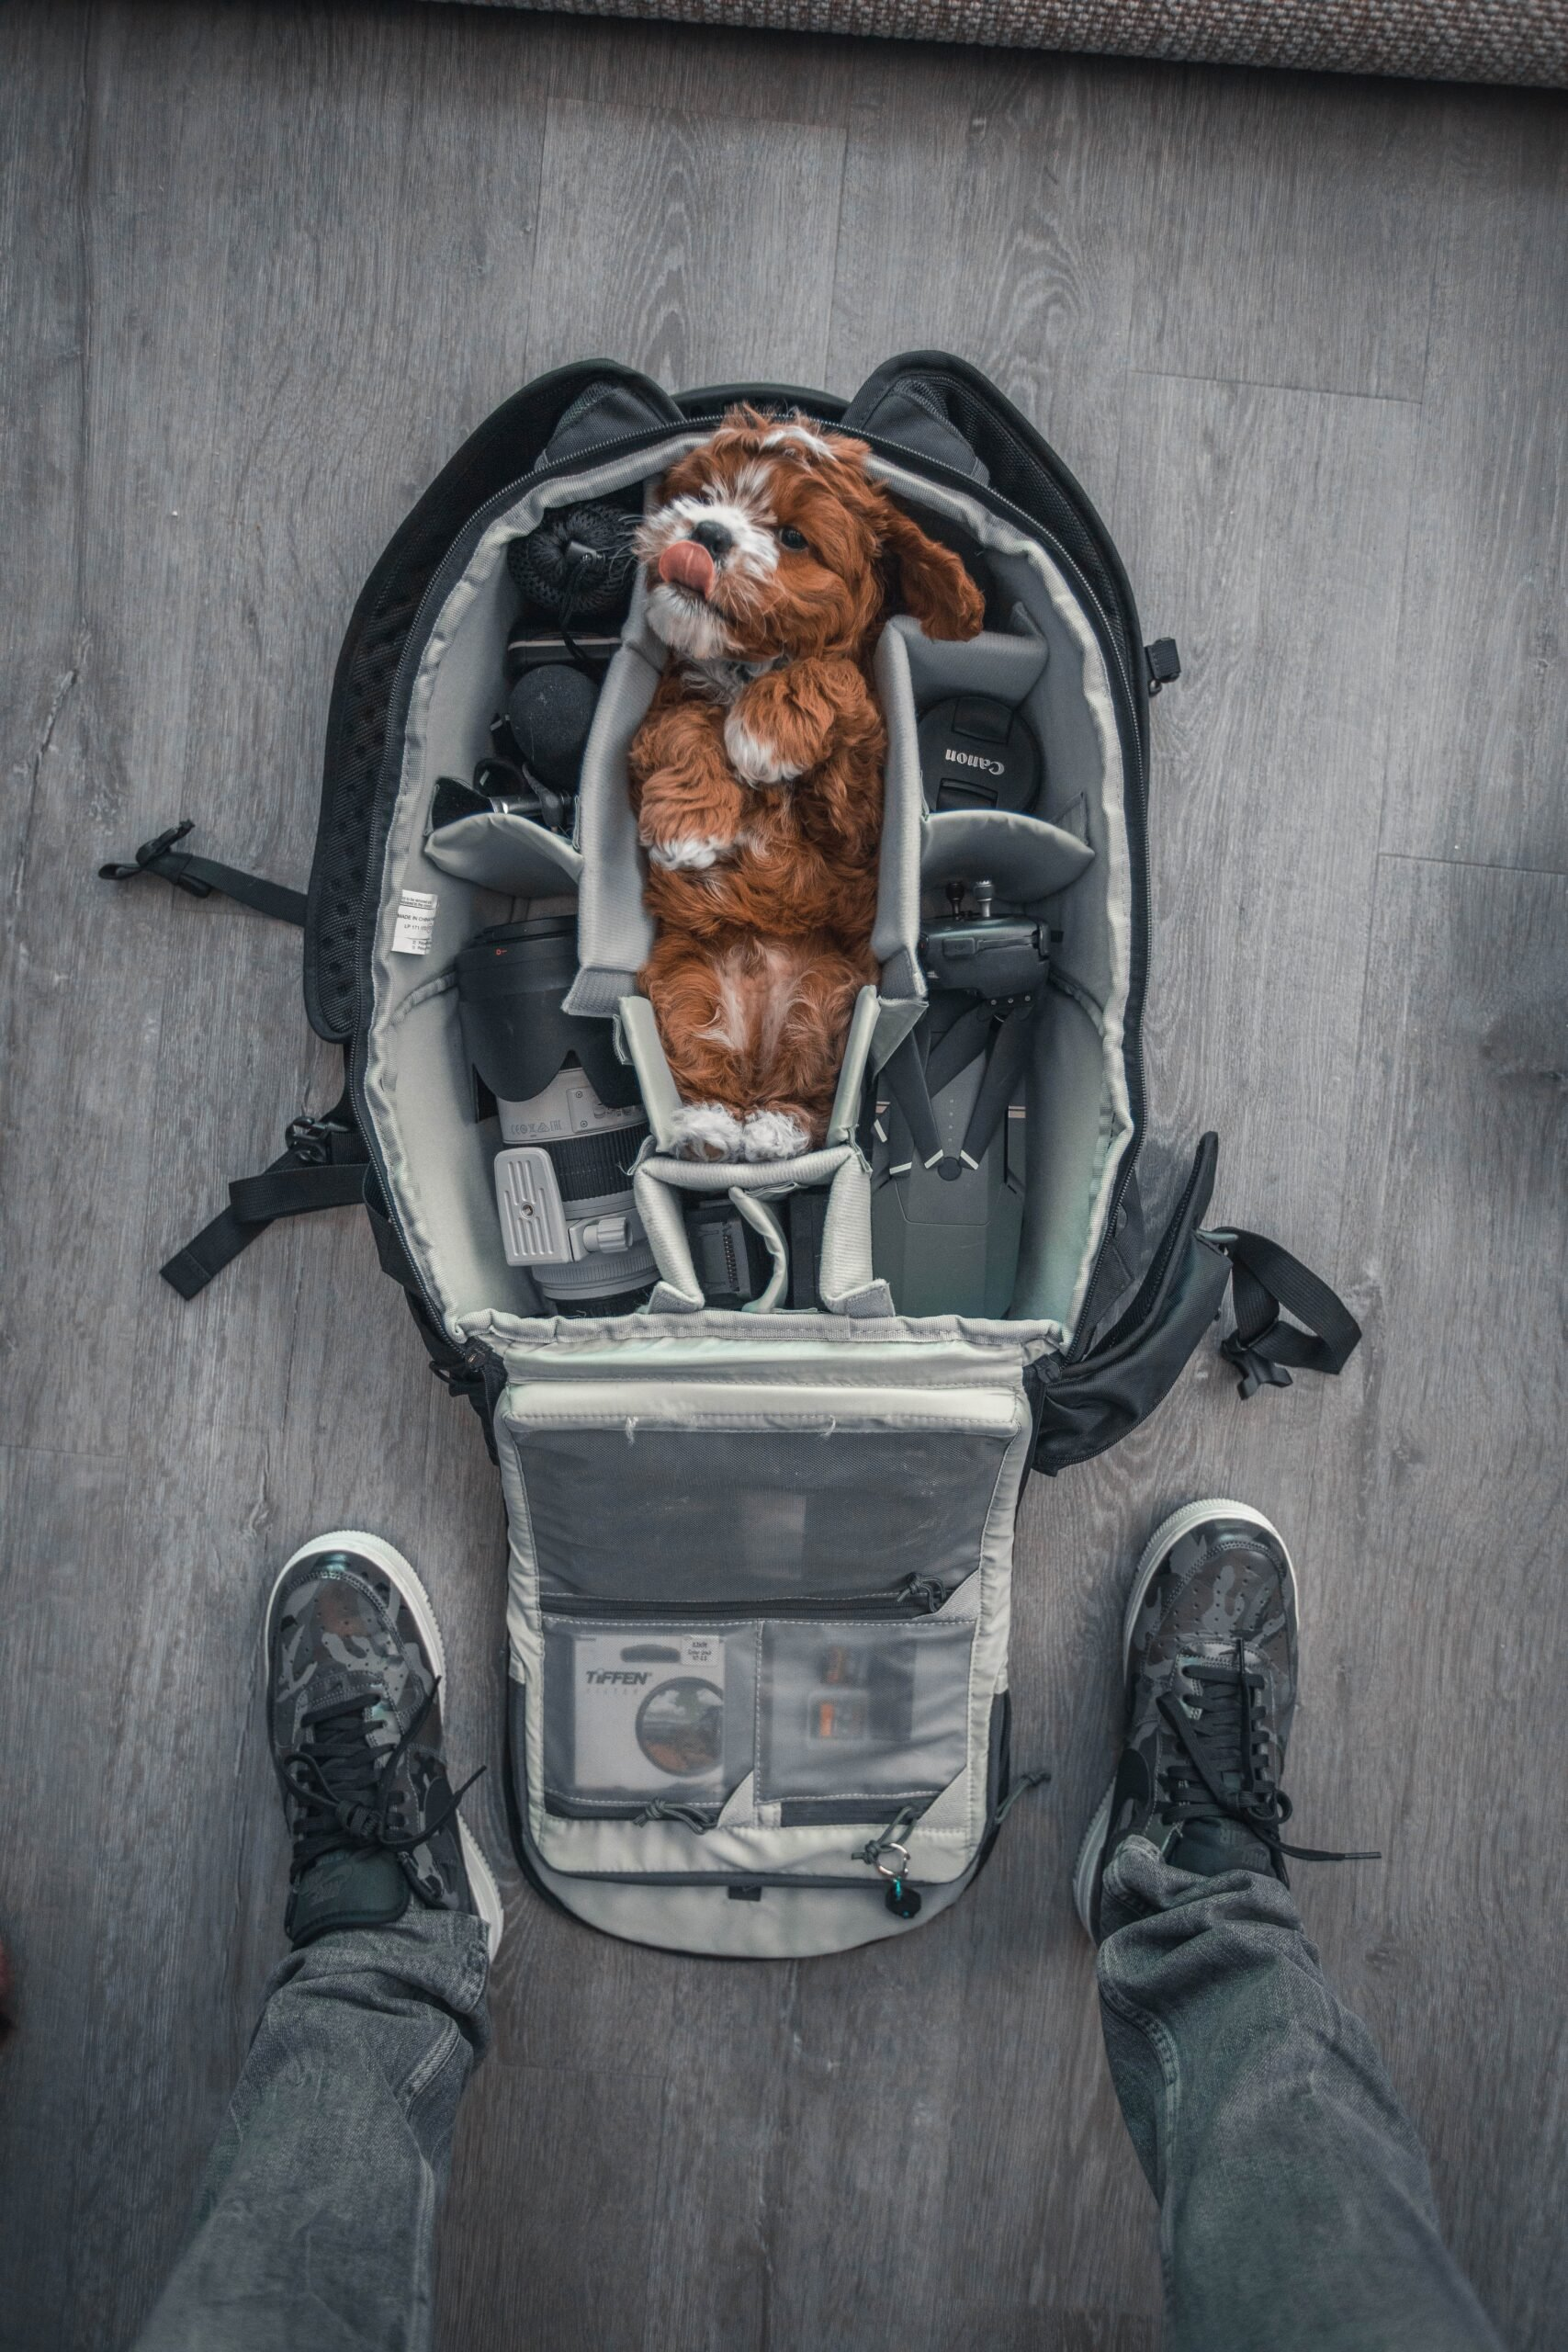 Dog in the Large Carrier for Travel